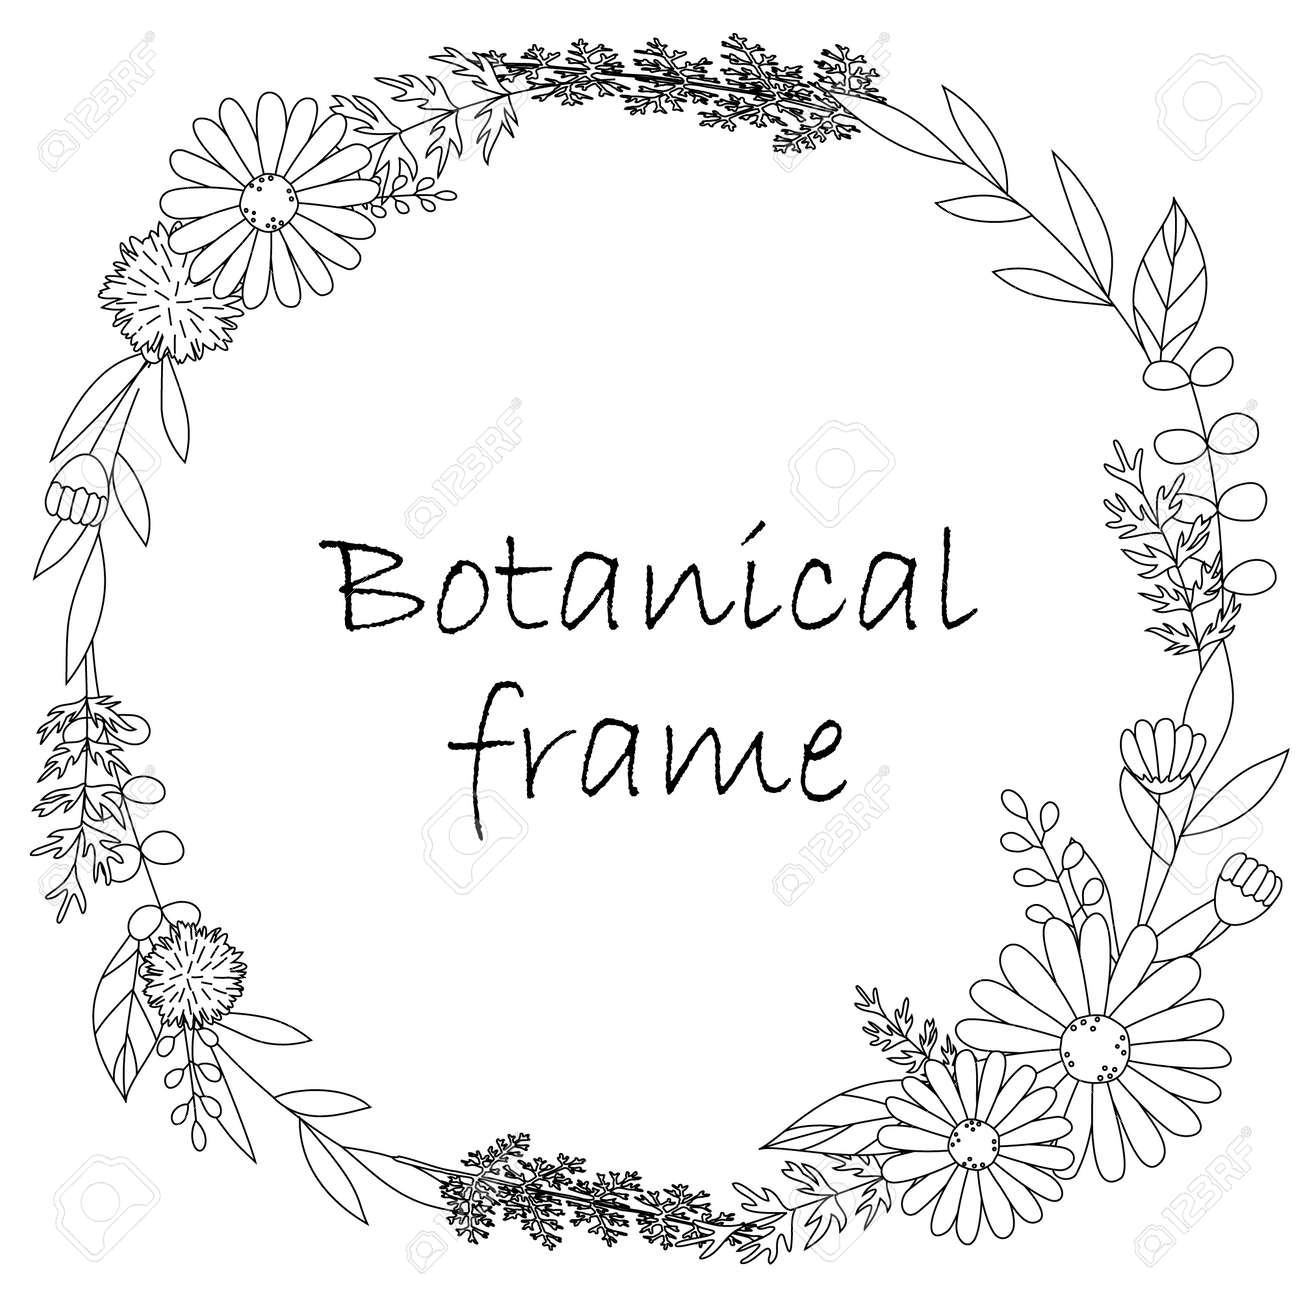 Botanical frame illustration. Invitation or greeting card templates (white background, vector, cut out) - 167854317